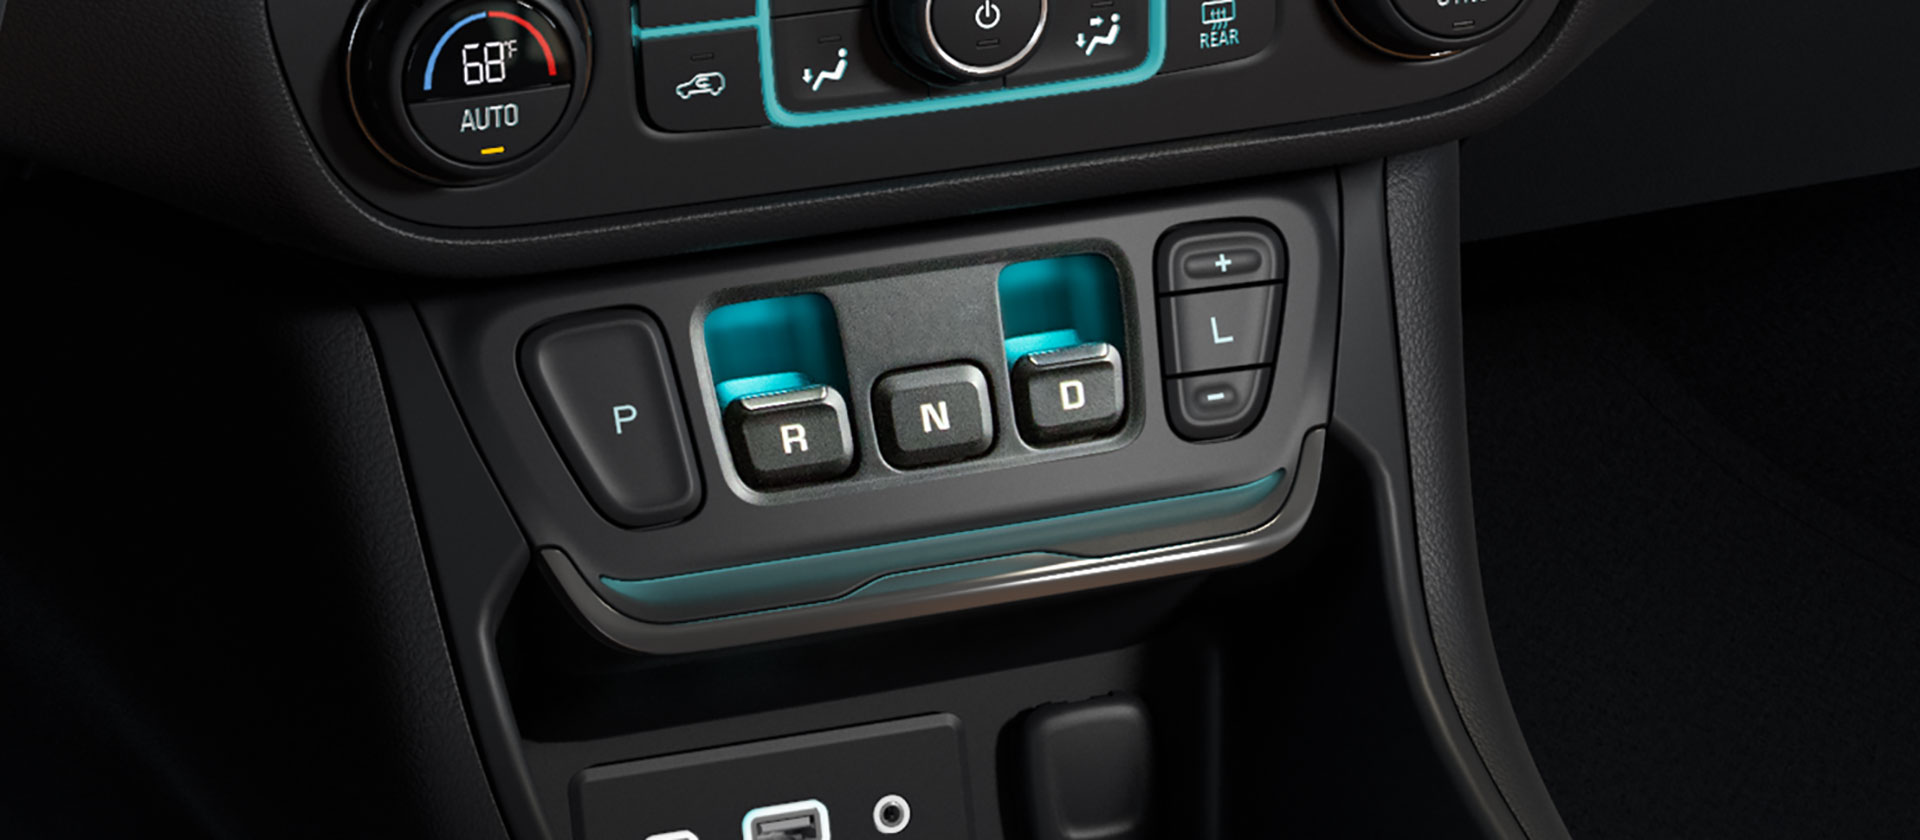 Gmc Debuts New Transmission Interface In The 2018 Terrain